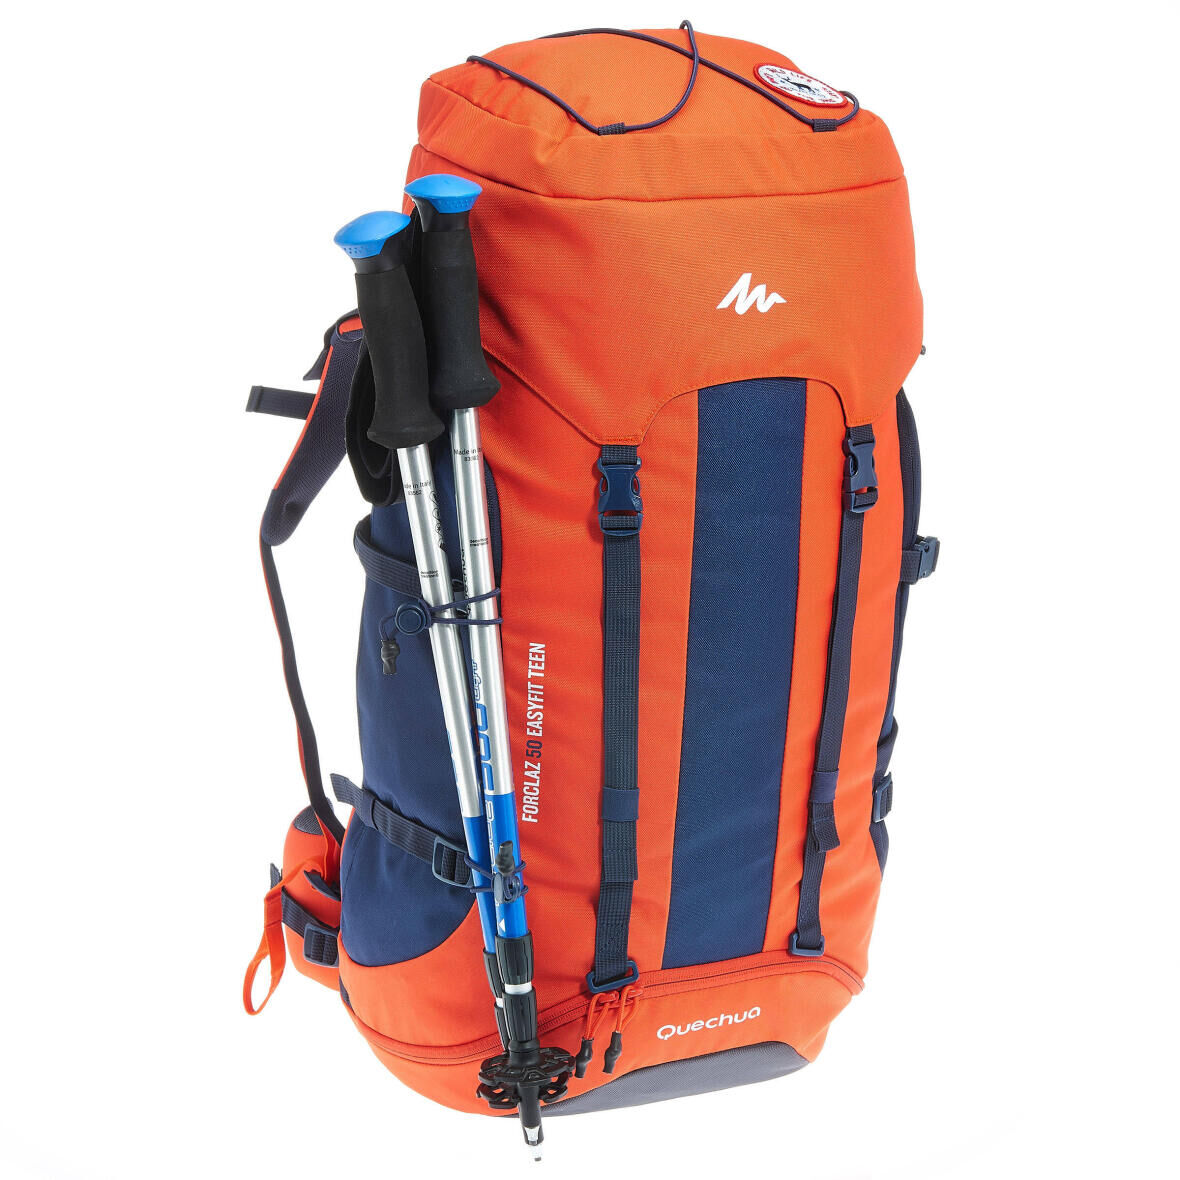 What Are The Best Kids' Hiking Backpacks?